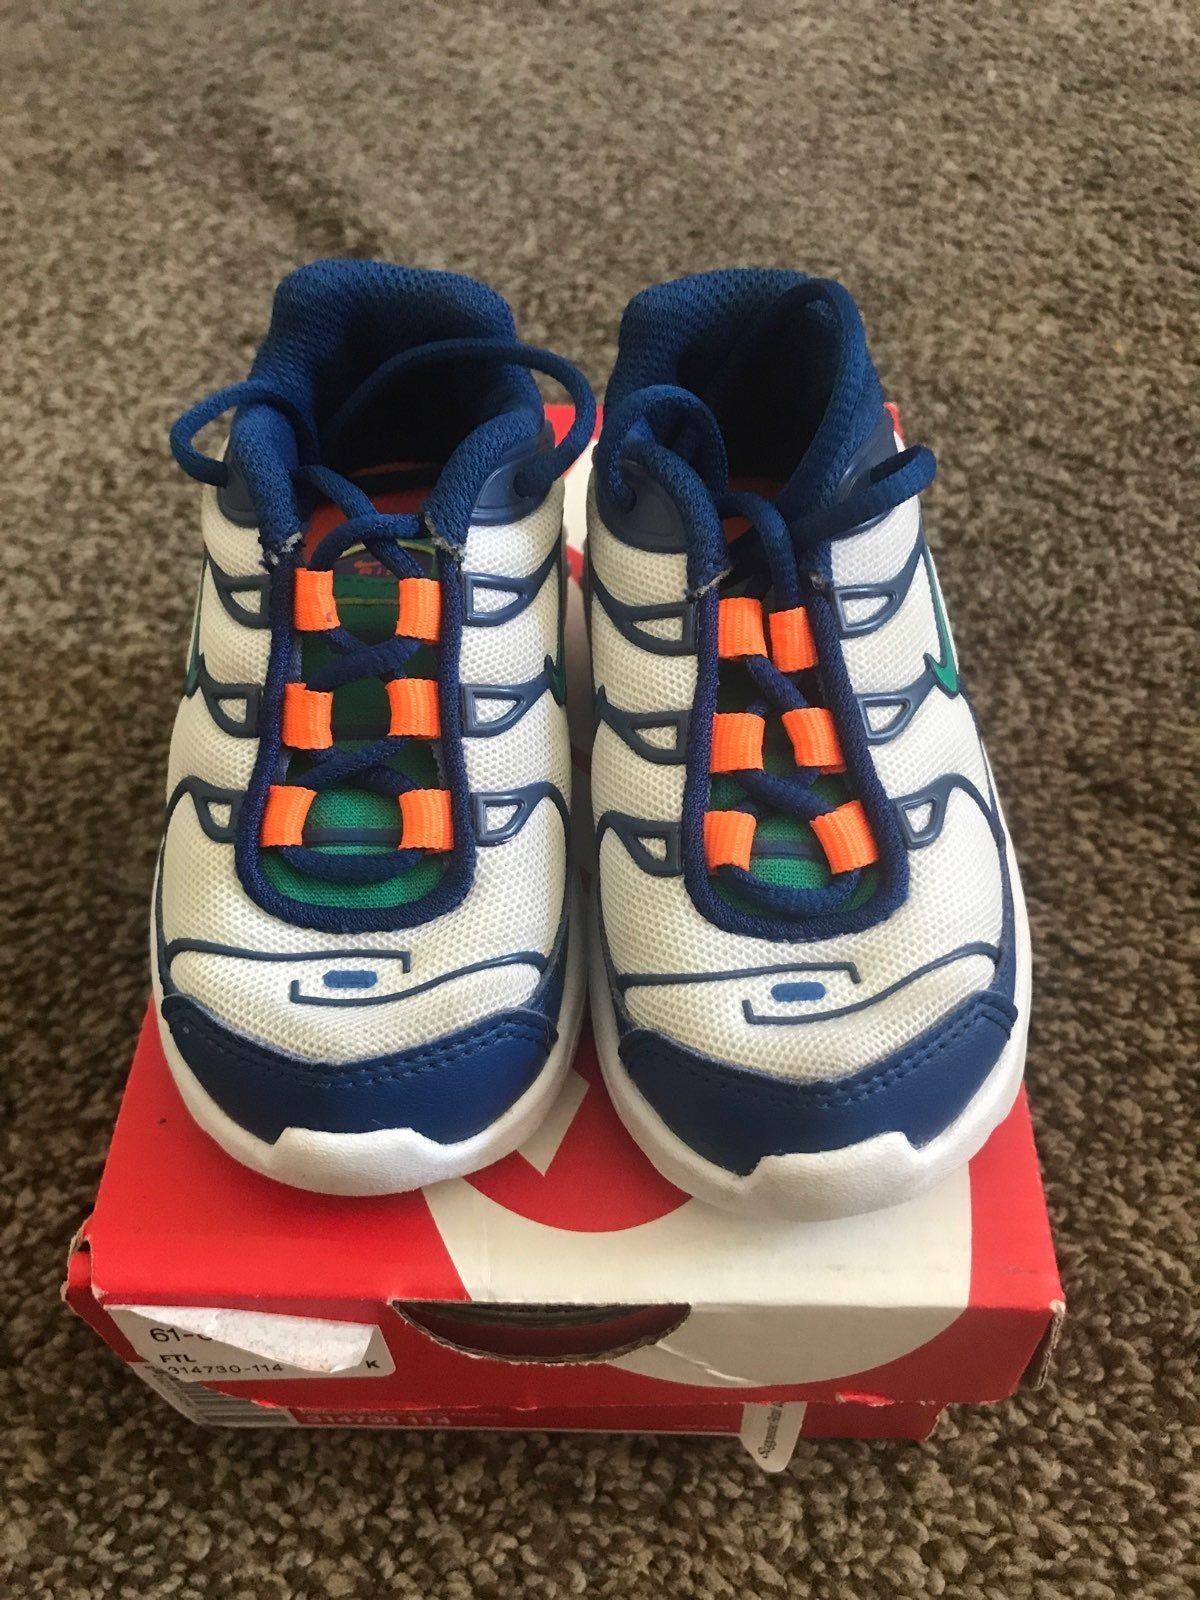 Excellent condition baby shoes size 5c